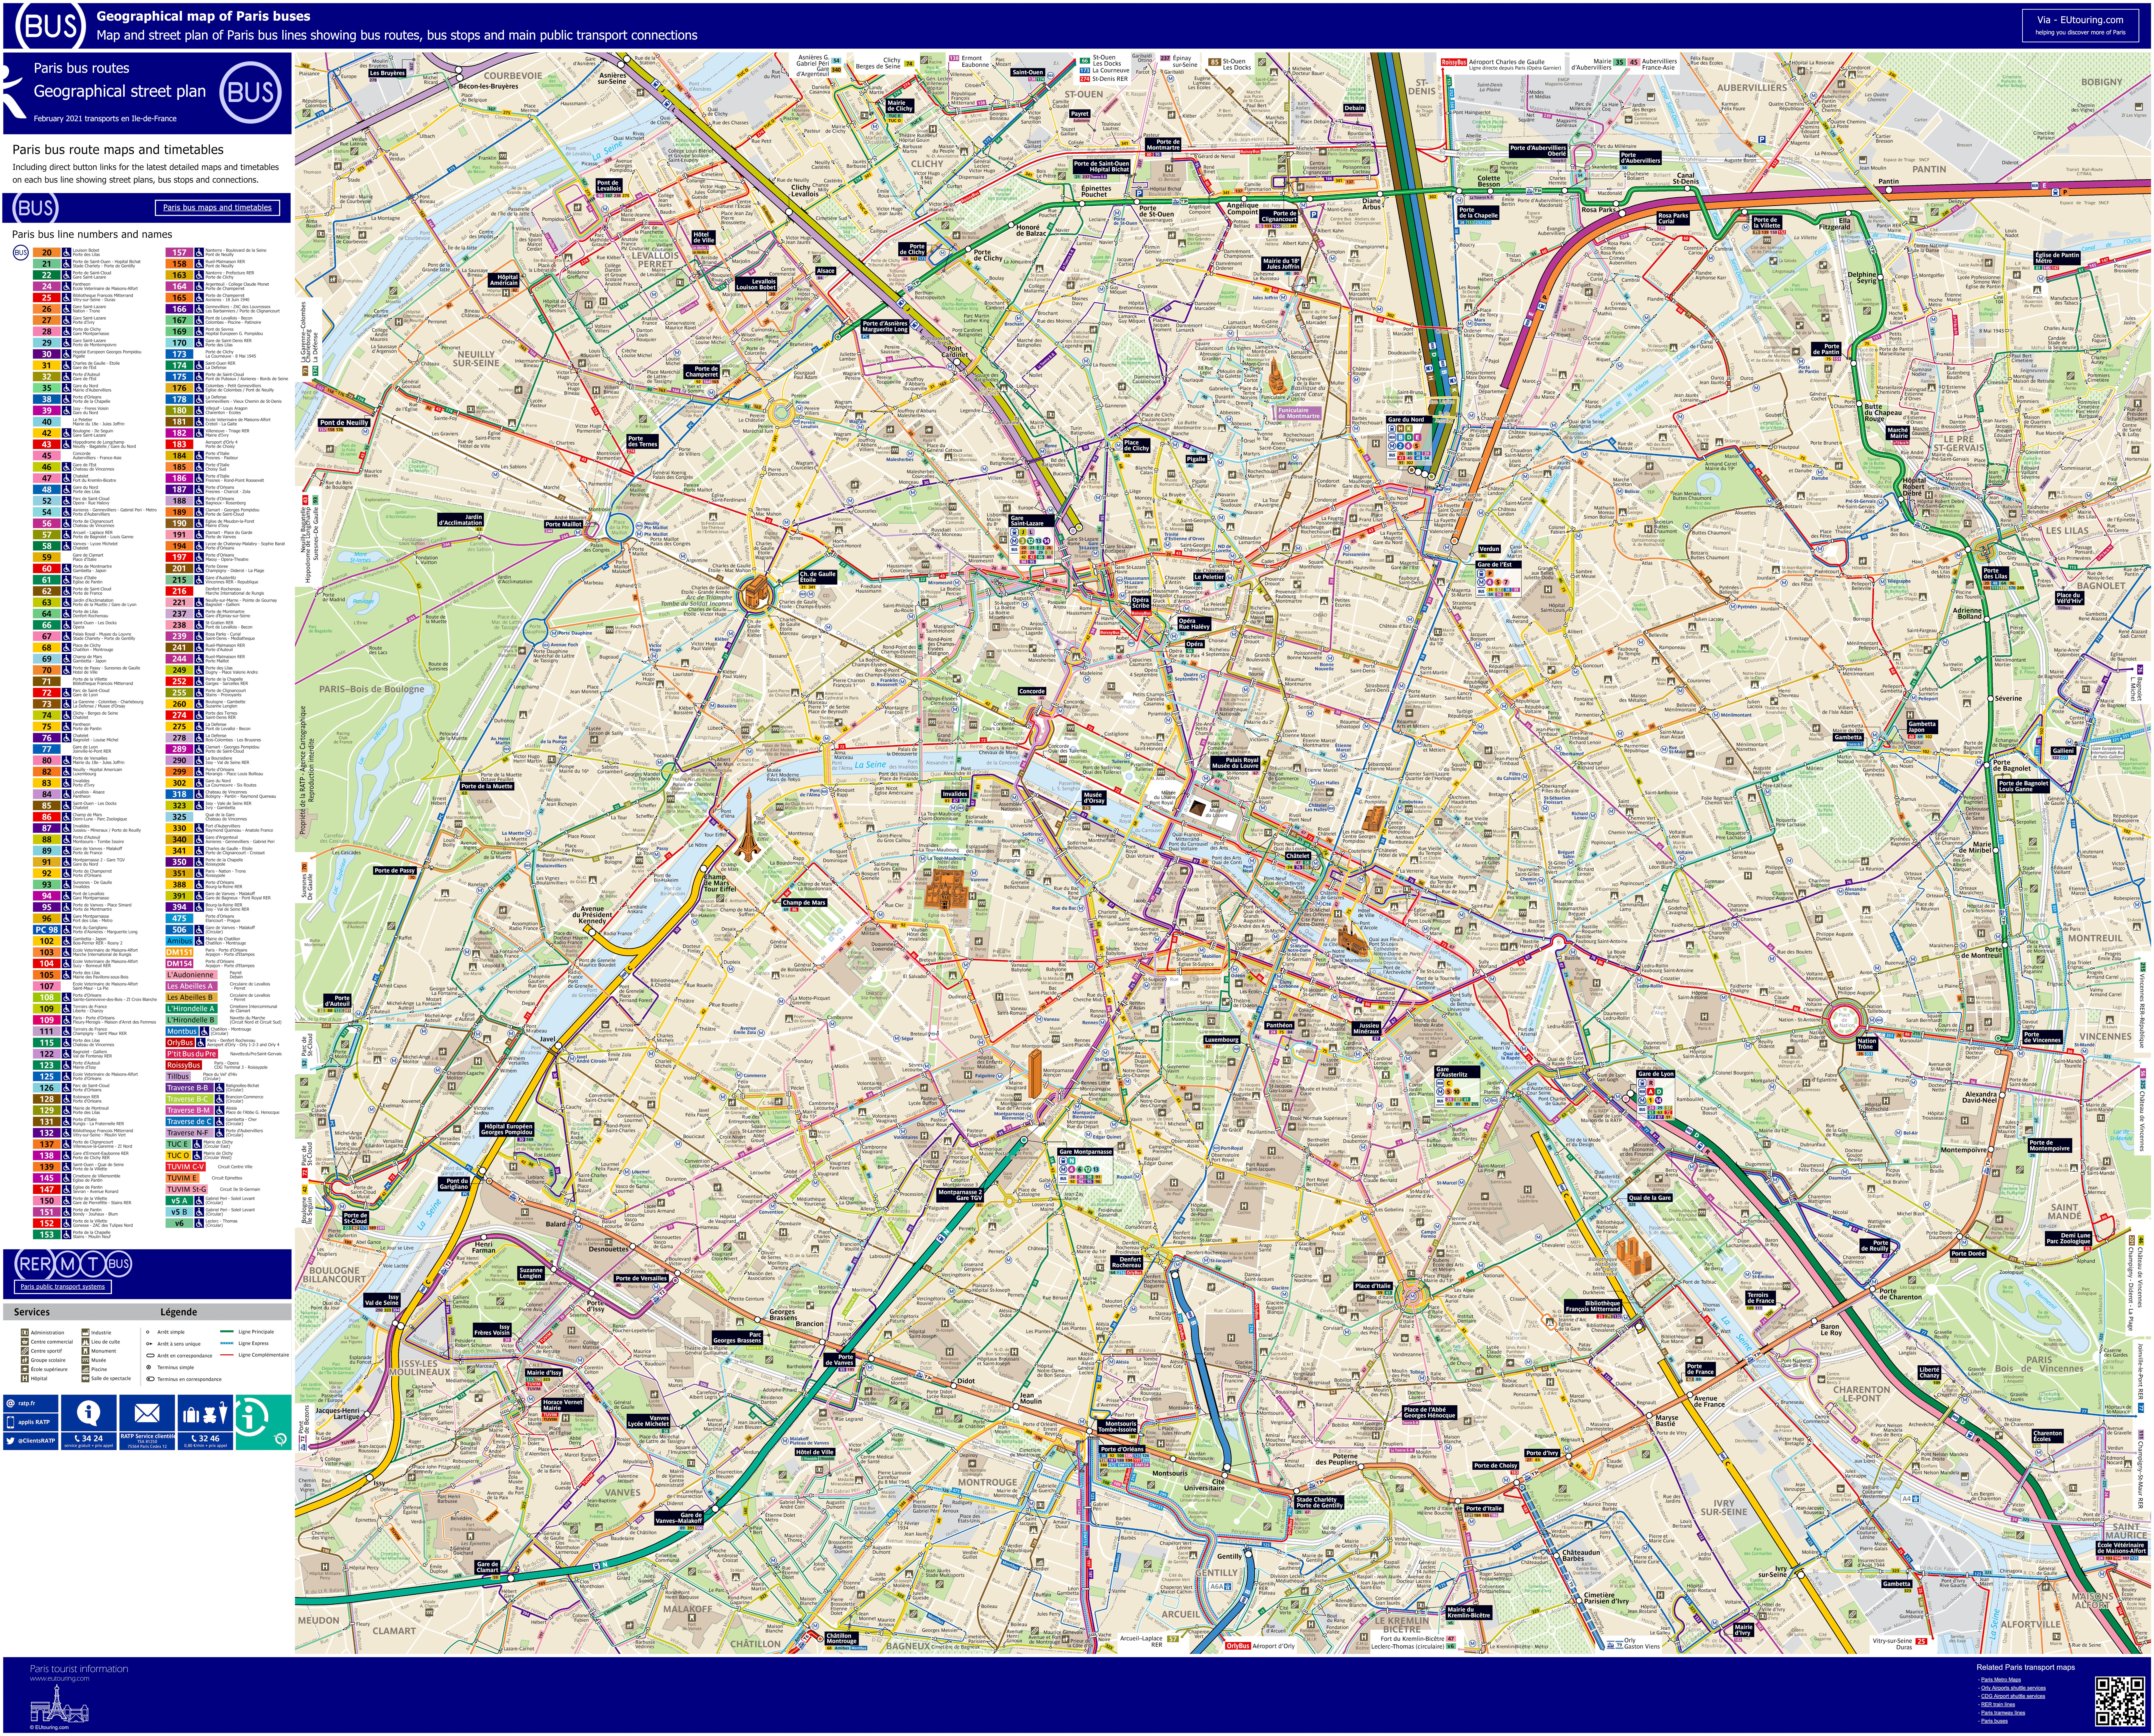 Paris Metro Map Download.Paris Bus Route Maps With City Street Plan In Pdf Or Image File